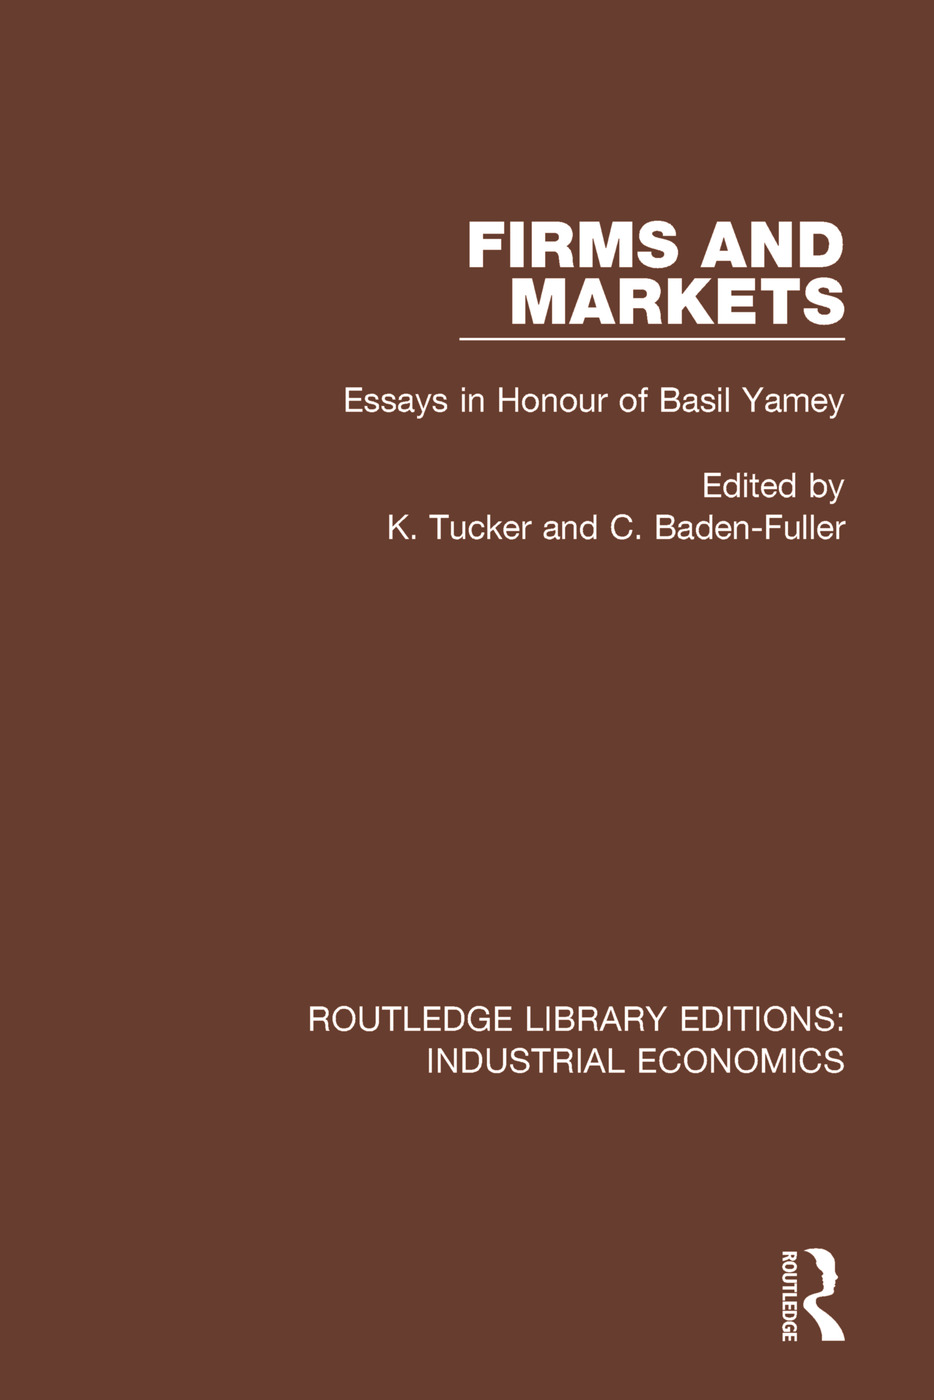 Firms and Markets: Essays in Honour of Basil Yamey book cover